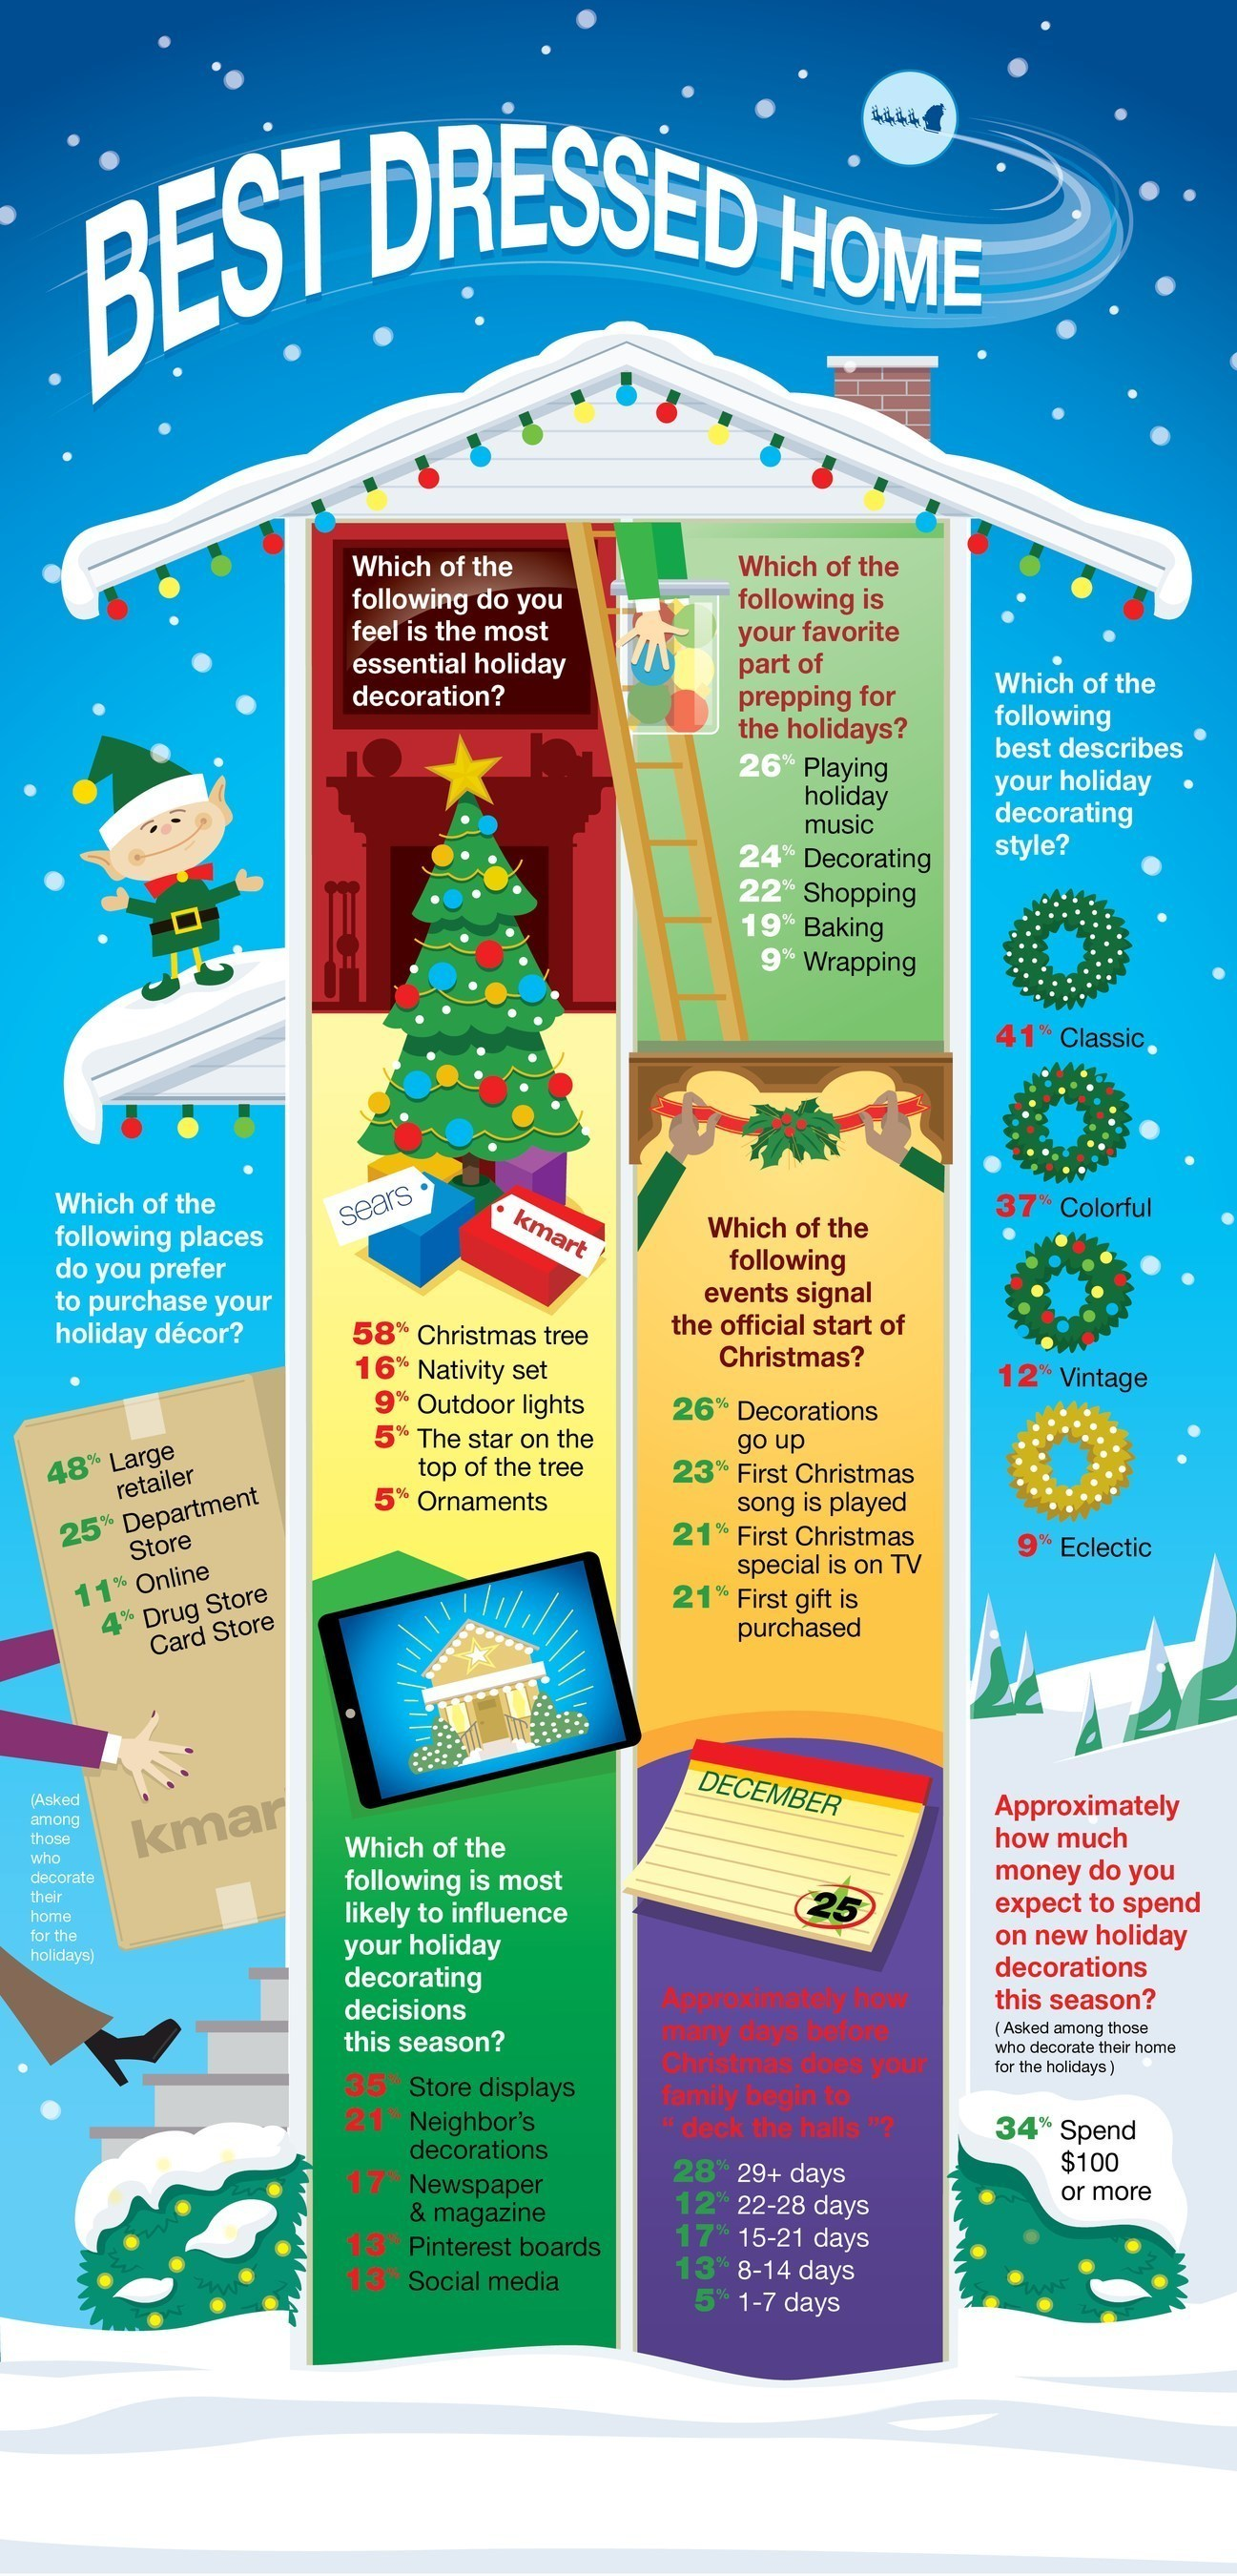 Kmart And Sears Survey Reveals Seasonal Decorating Trends For 2014